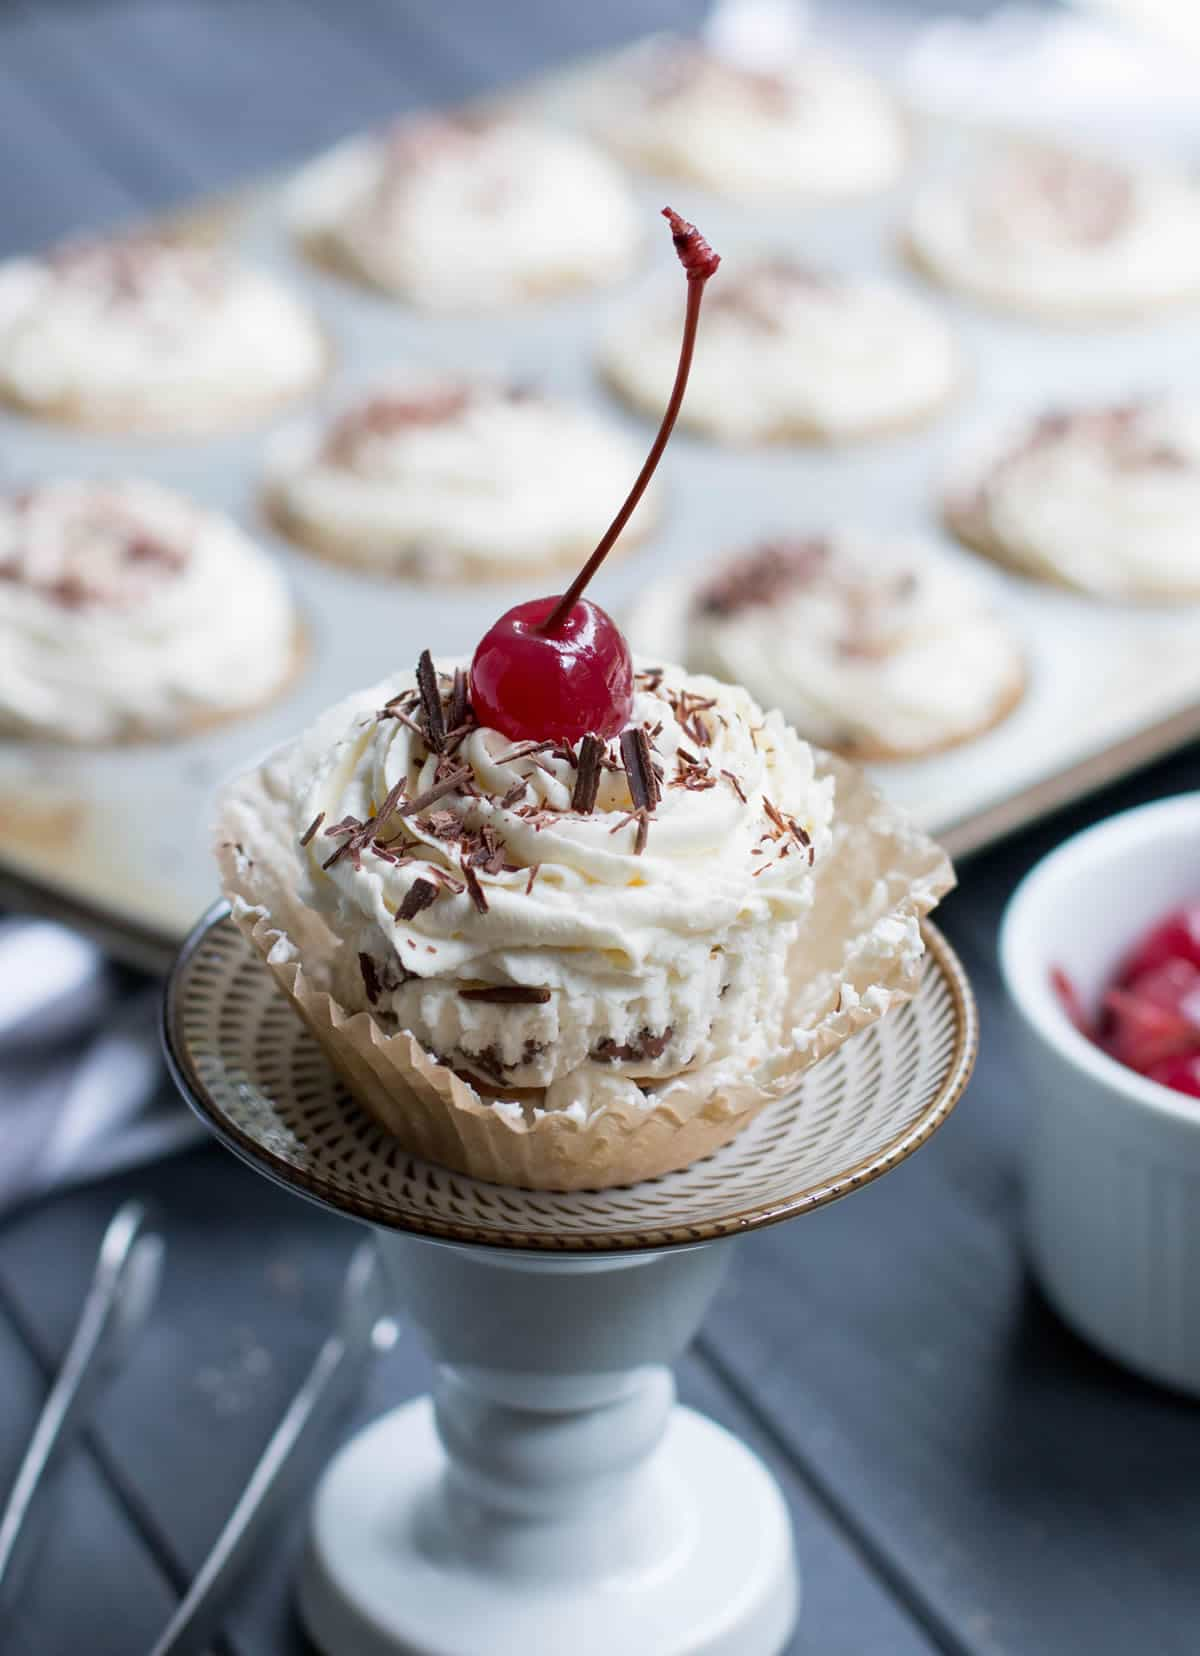 No Bake Ice Box Cannoli Cupcakes. Easy, one bowl ricotta filling is layered with vanilla wafers, topped with whipped cream, chocolate shavings and a cherry!